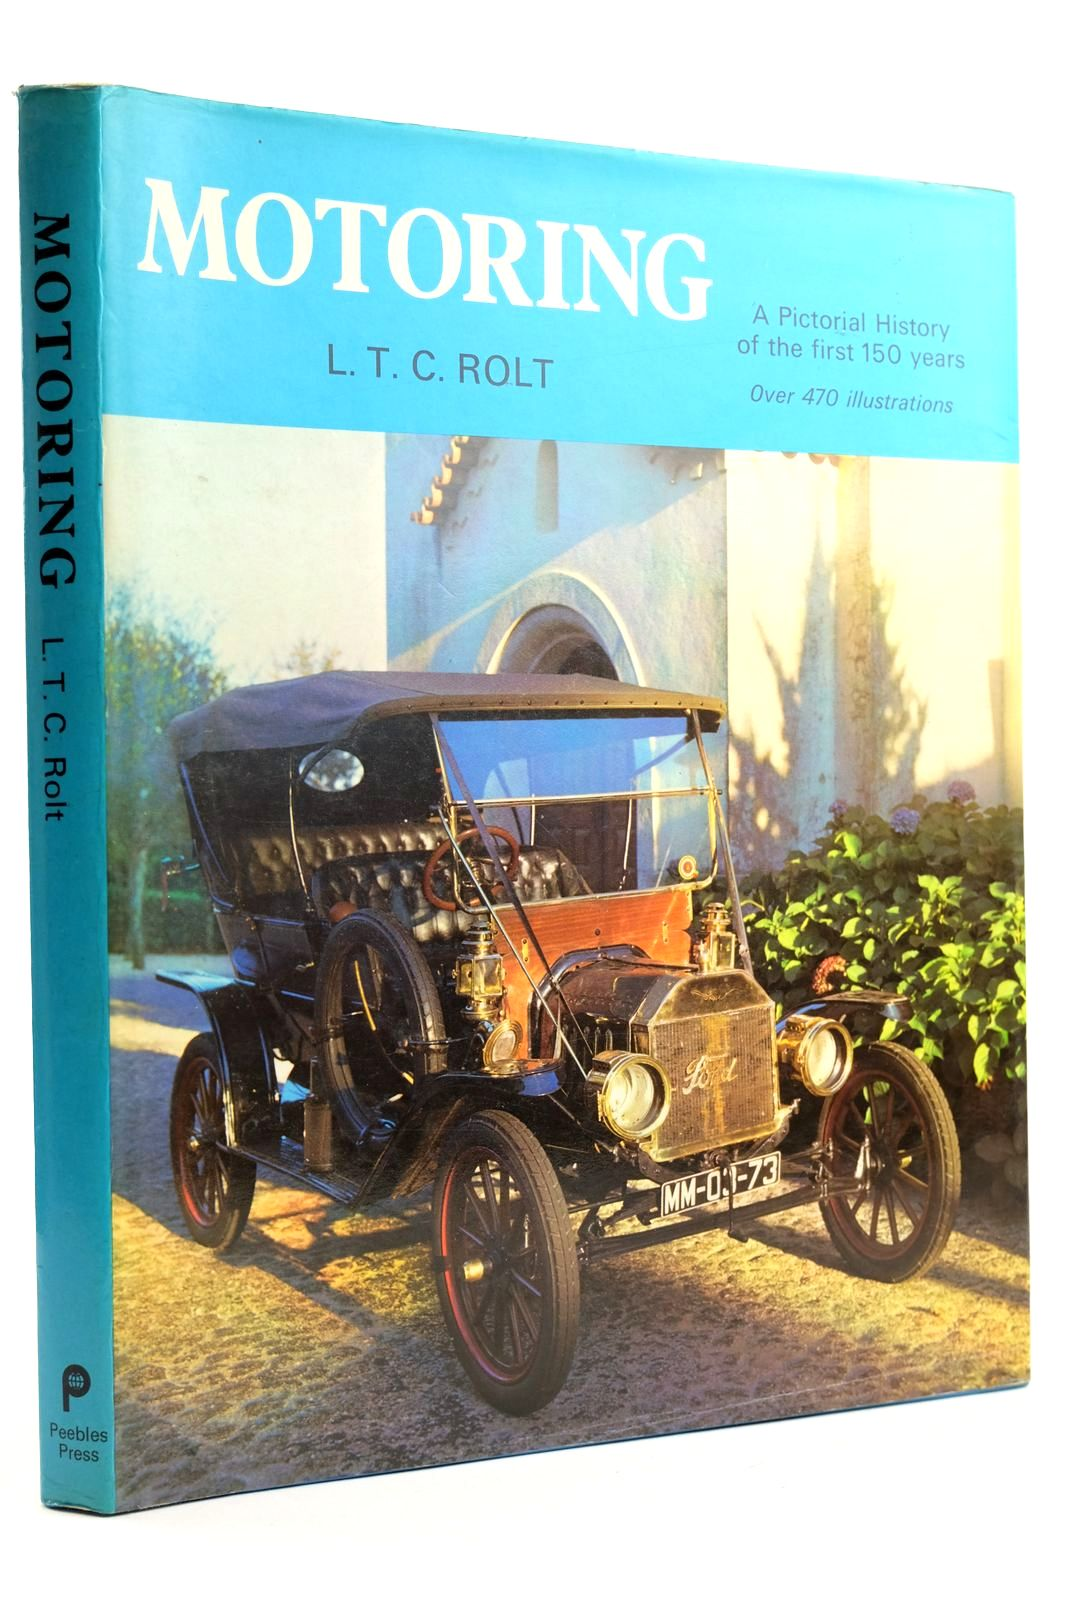 Photo of MOTORING A PICTORIAL HISTORY OF THE FIRST 150 YEARS written by Rolt, L.T.C. published by Peebles Press (STOCK CODE: 2132137)  for sale by Stella & Rose's Books